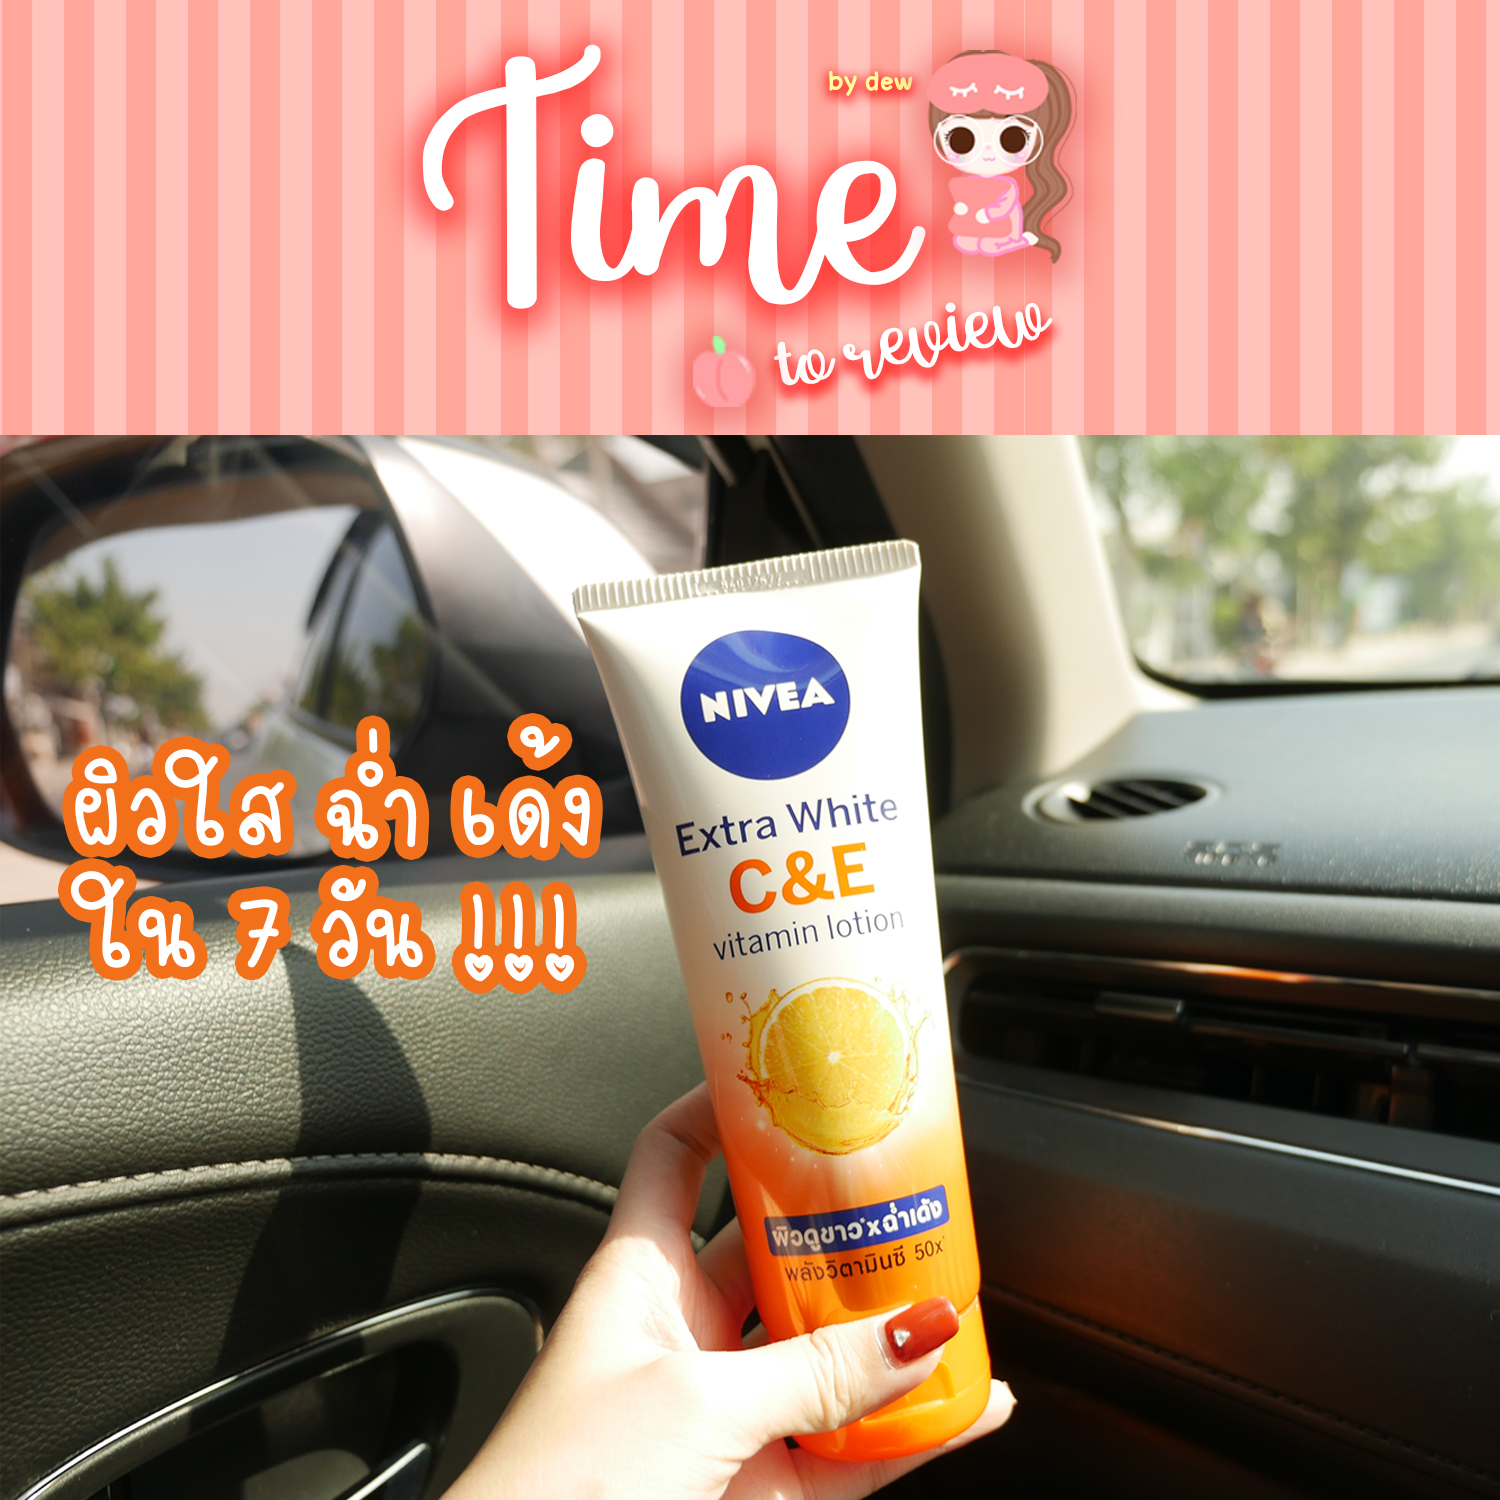 [Review] NIVEA Extra White C&E Vitamin Lotion